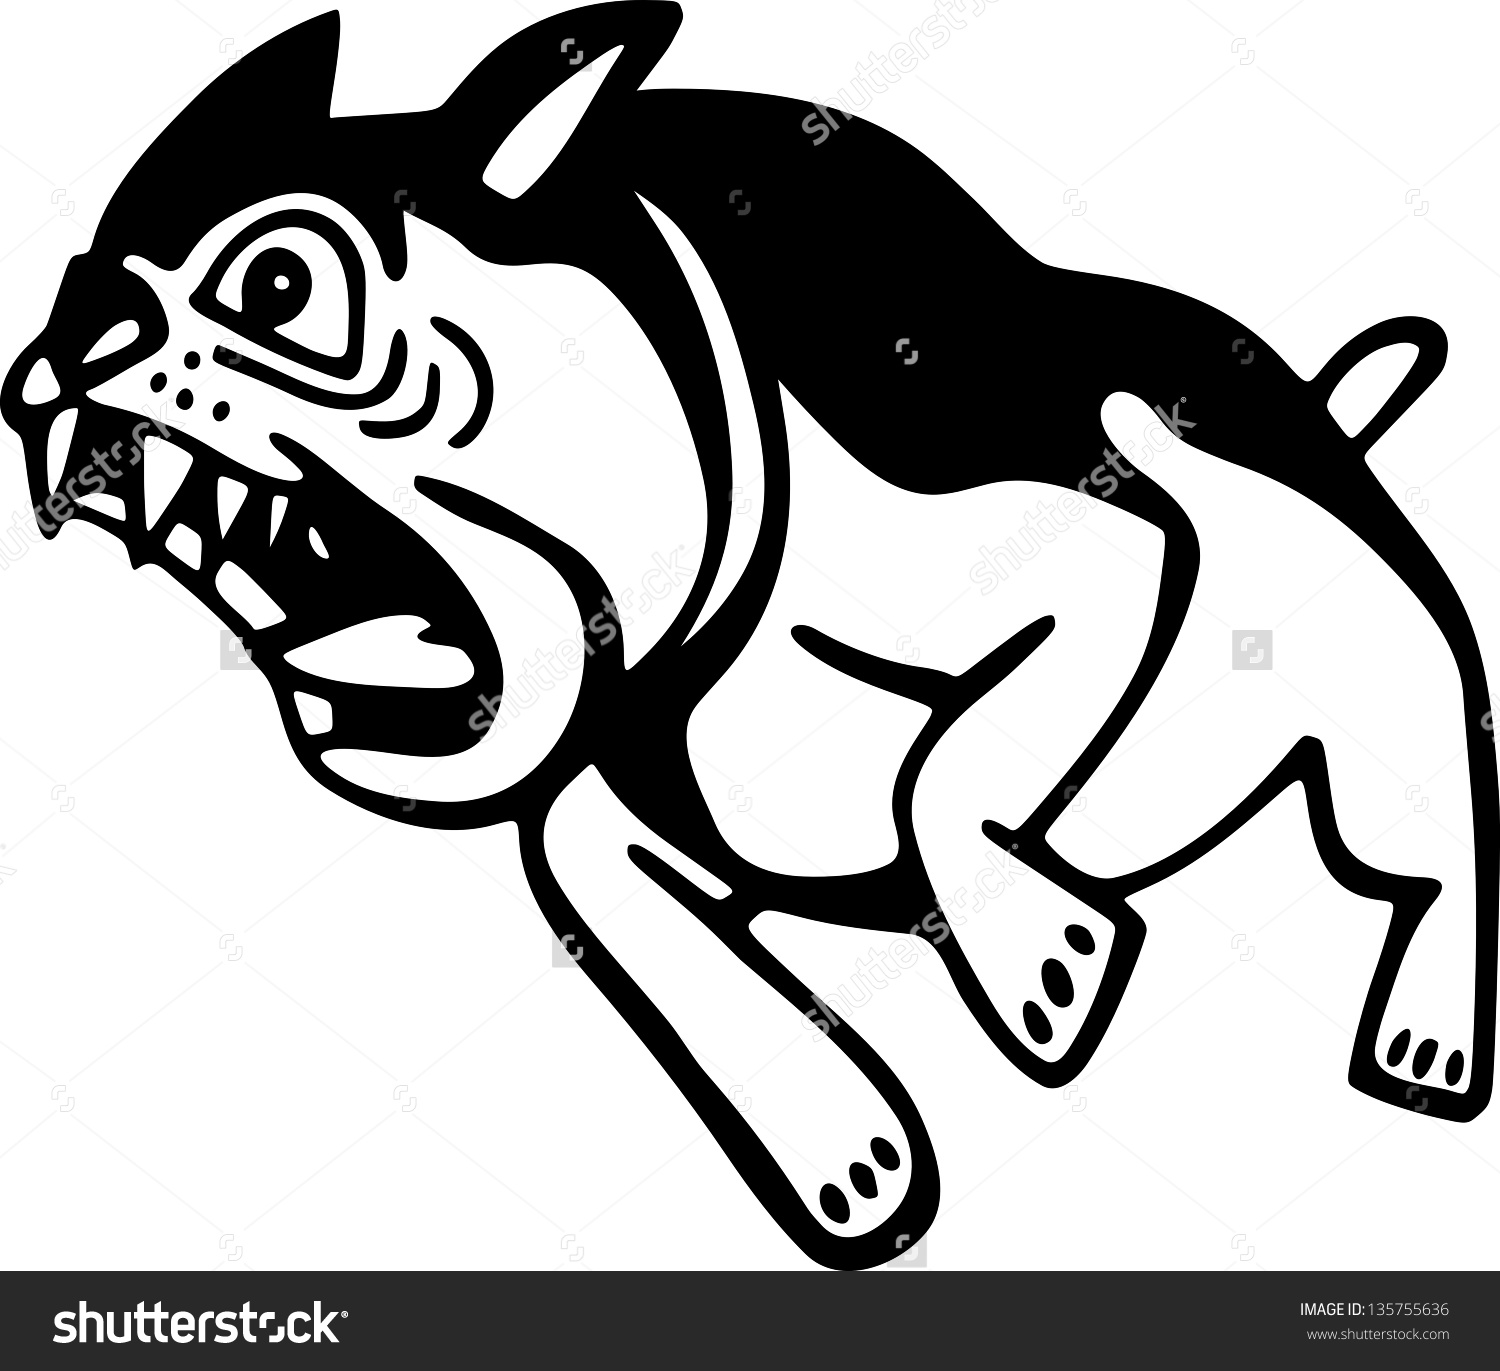 Agree dog chase black and white clipart vector royalty free library Dog Graphics Black And White | Funny Cat & Dog Pictures vector royalty free library